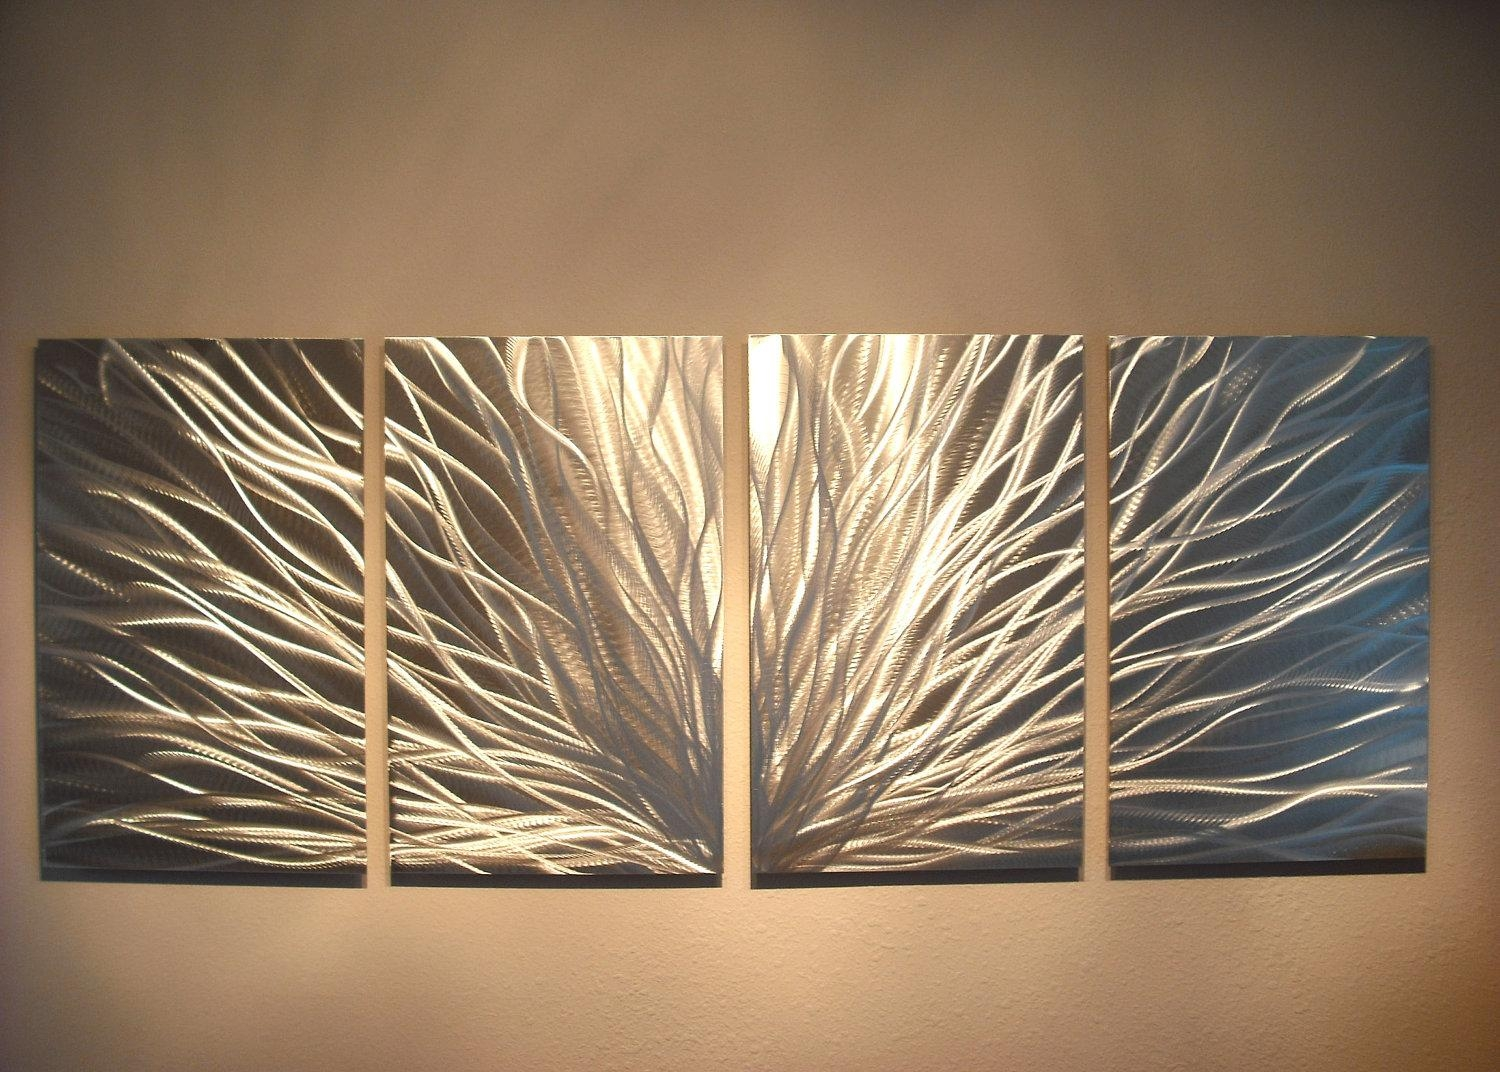 Metal Wall Art Decor Abstract Aluminum Contemporary Modern Throughout Metallic Wall Art (View 6 of 20)